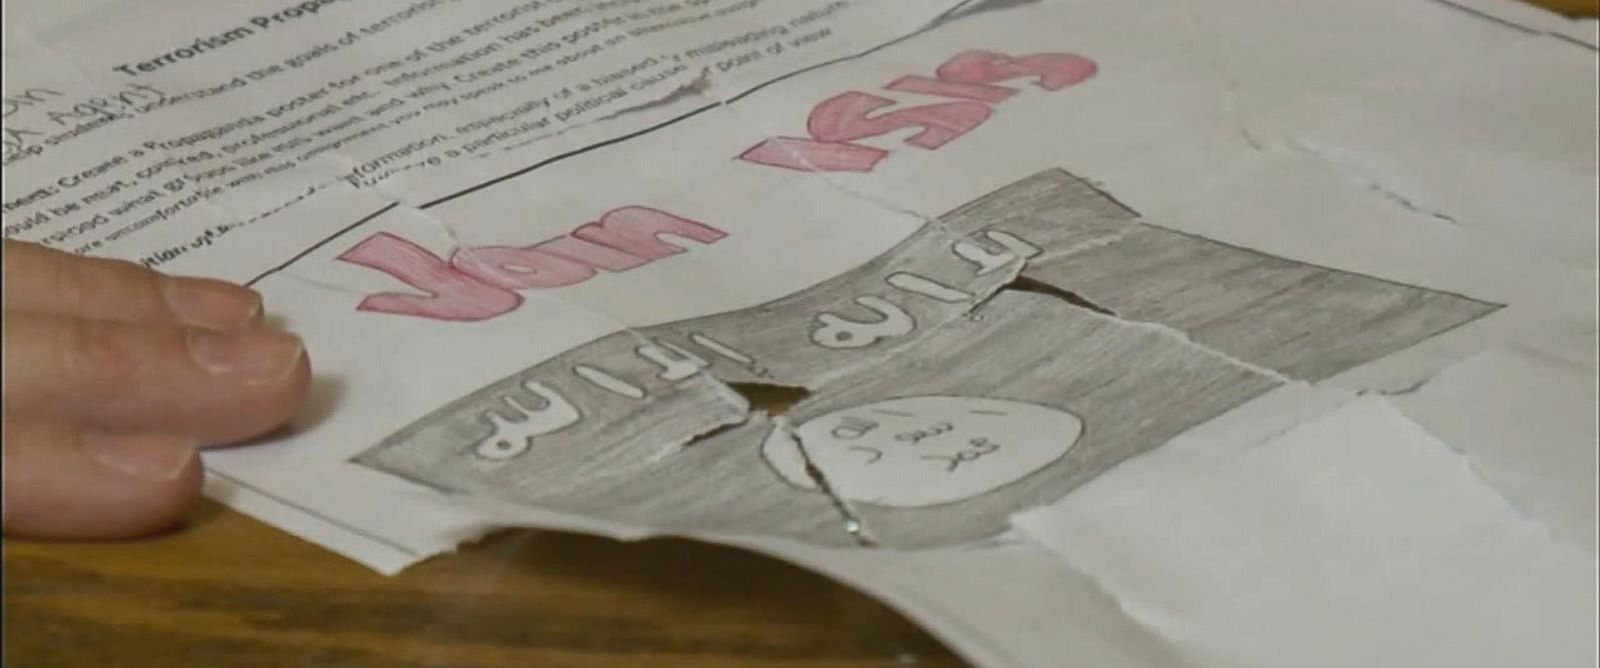 PHOTO: A new teacher at Salem Junior High School in Utah gave an in-class assignment asking students to draw a propaganda poster for ISIS on Nov. 18, 2015.